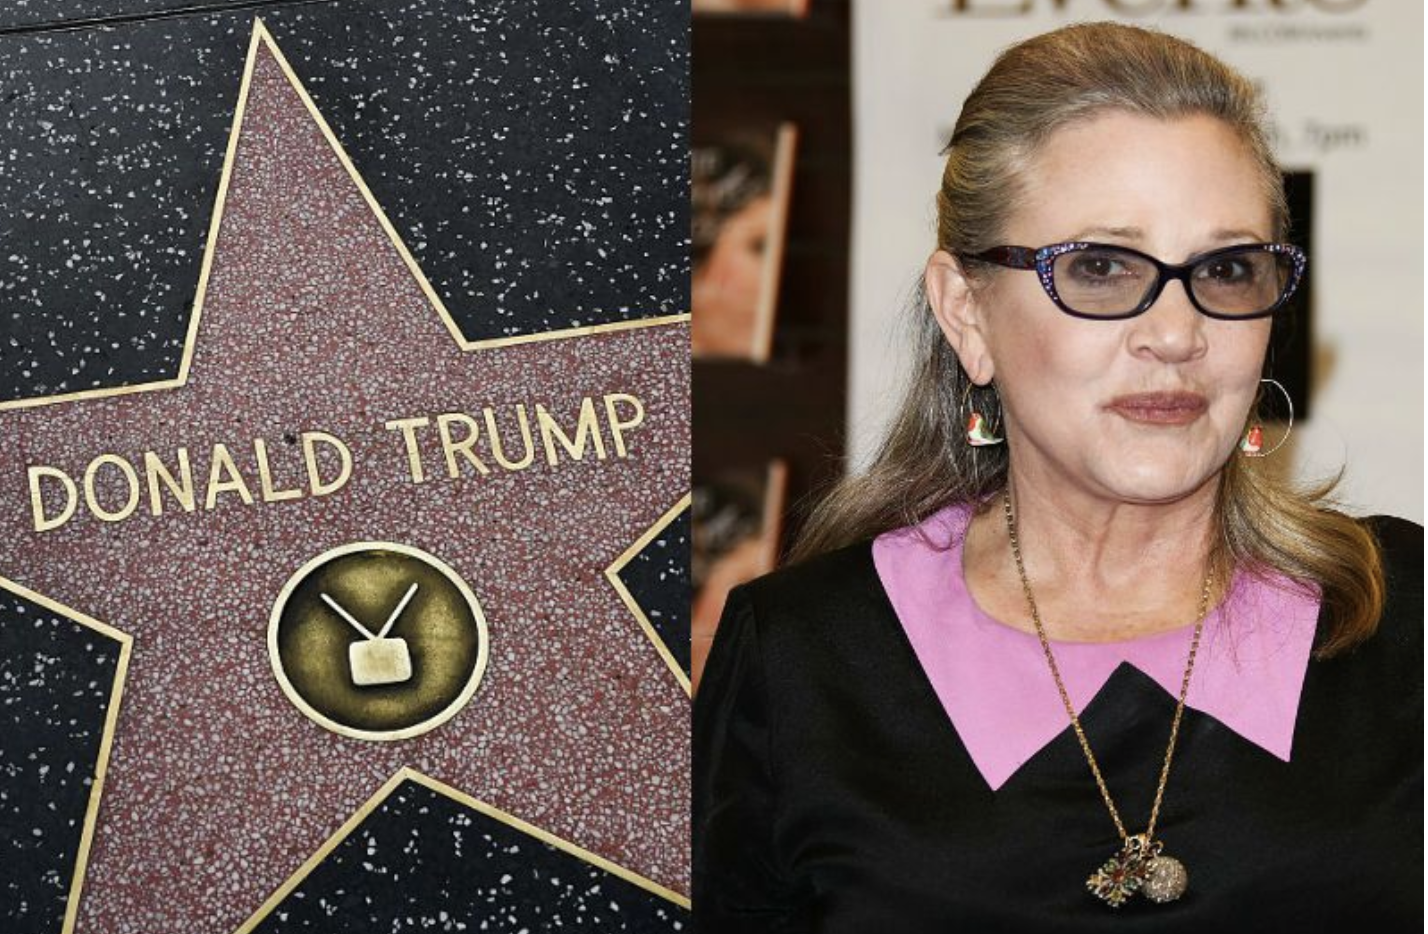 Mark Hamill Starts Viral Hashtag To Replace Trump's Walk Of Fame Star With Carrie Fisher